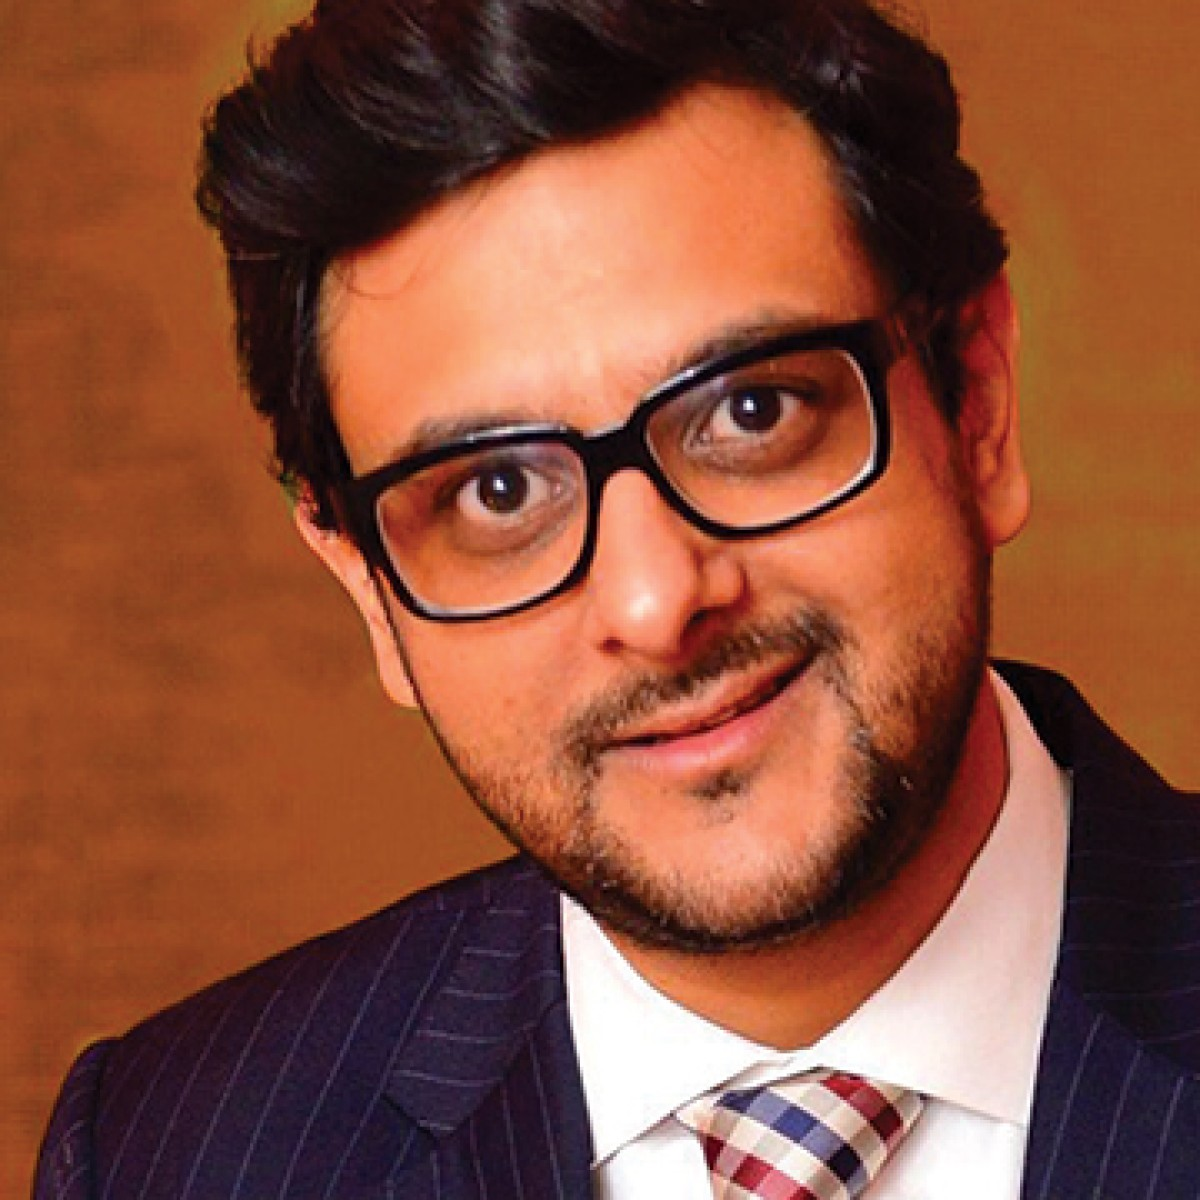 Following Sexual Harassment Allegations, Gaurav Bhatia Has Stepped Down as Managing Director of Sotheby's India